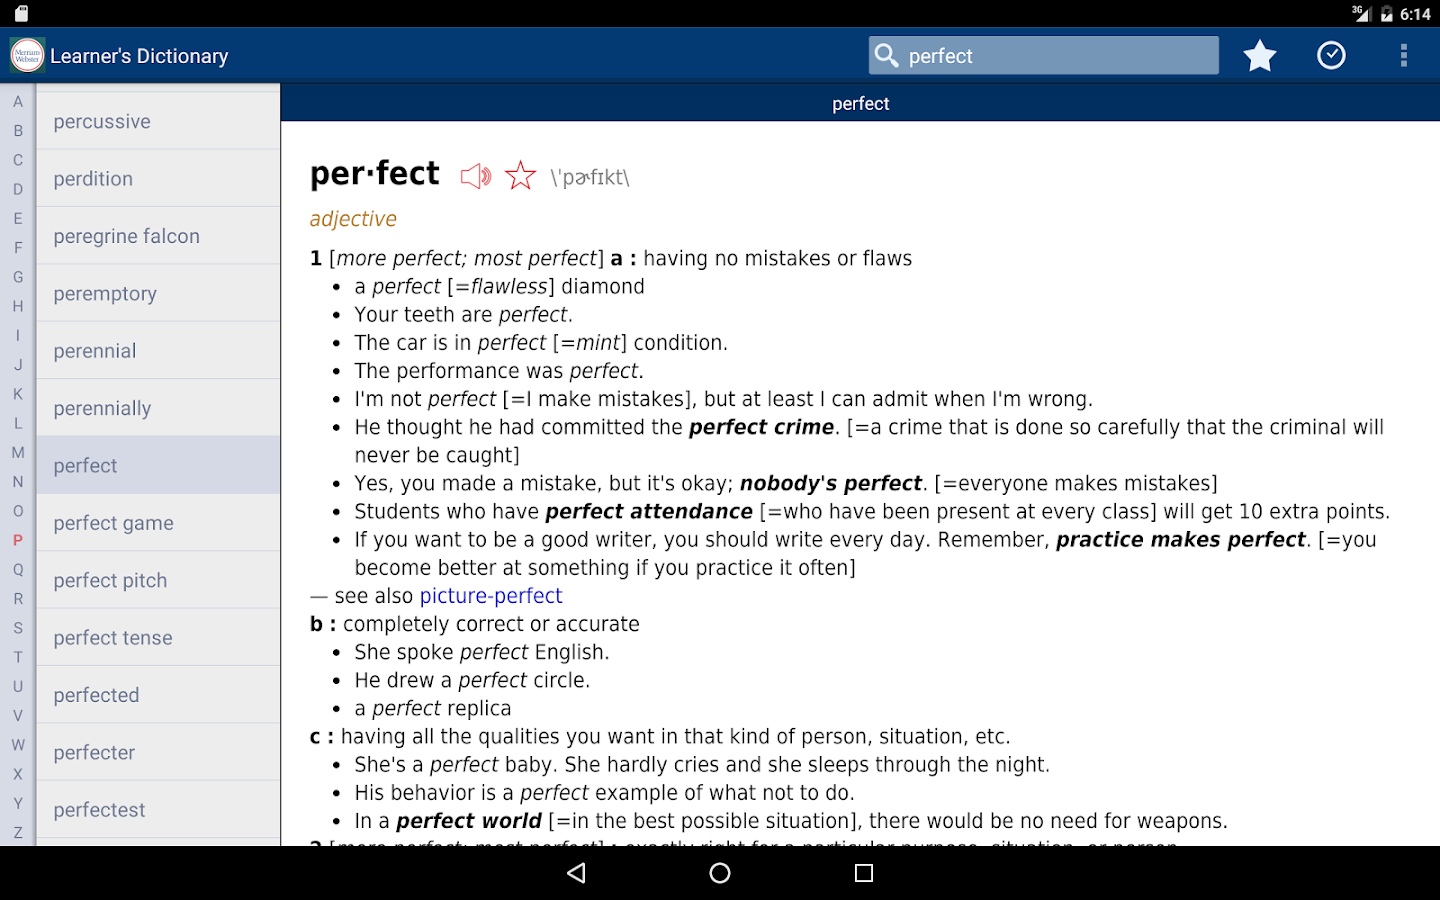 Learner's Dictionary - English Screenshot 6